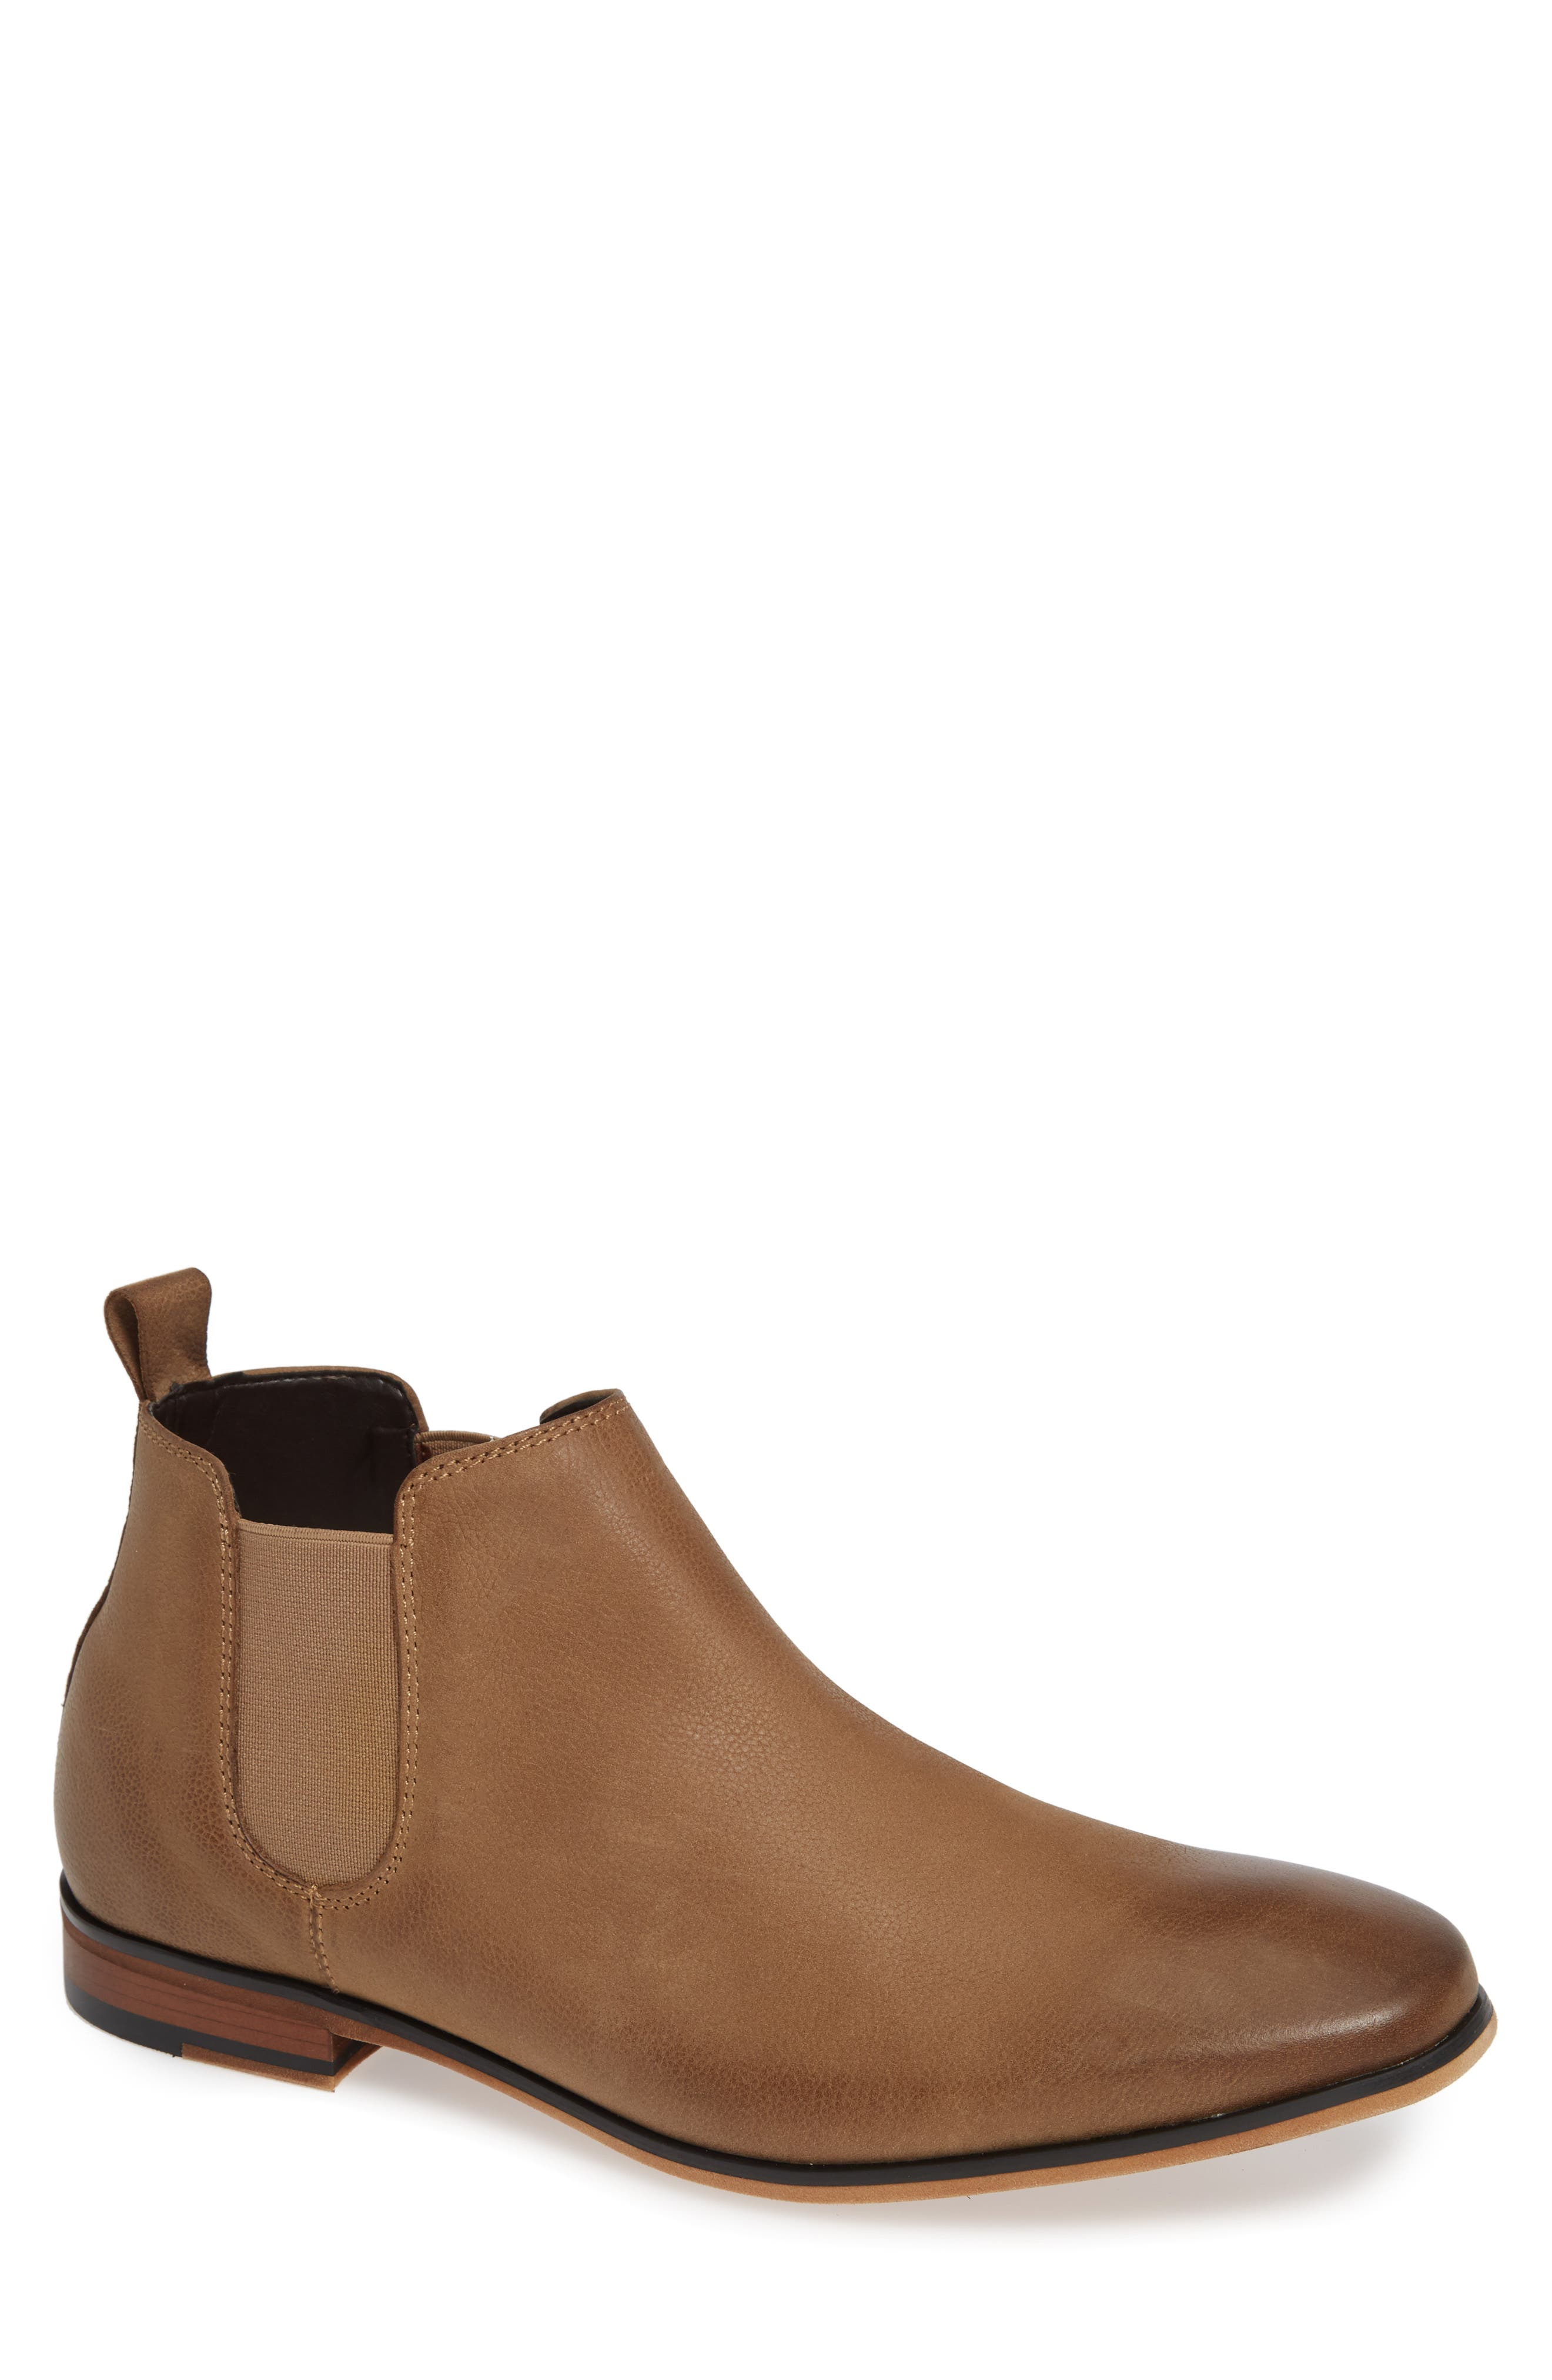 Guy Chelsea Boot,                         Main,                         color, 234